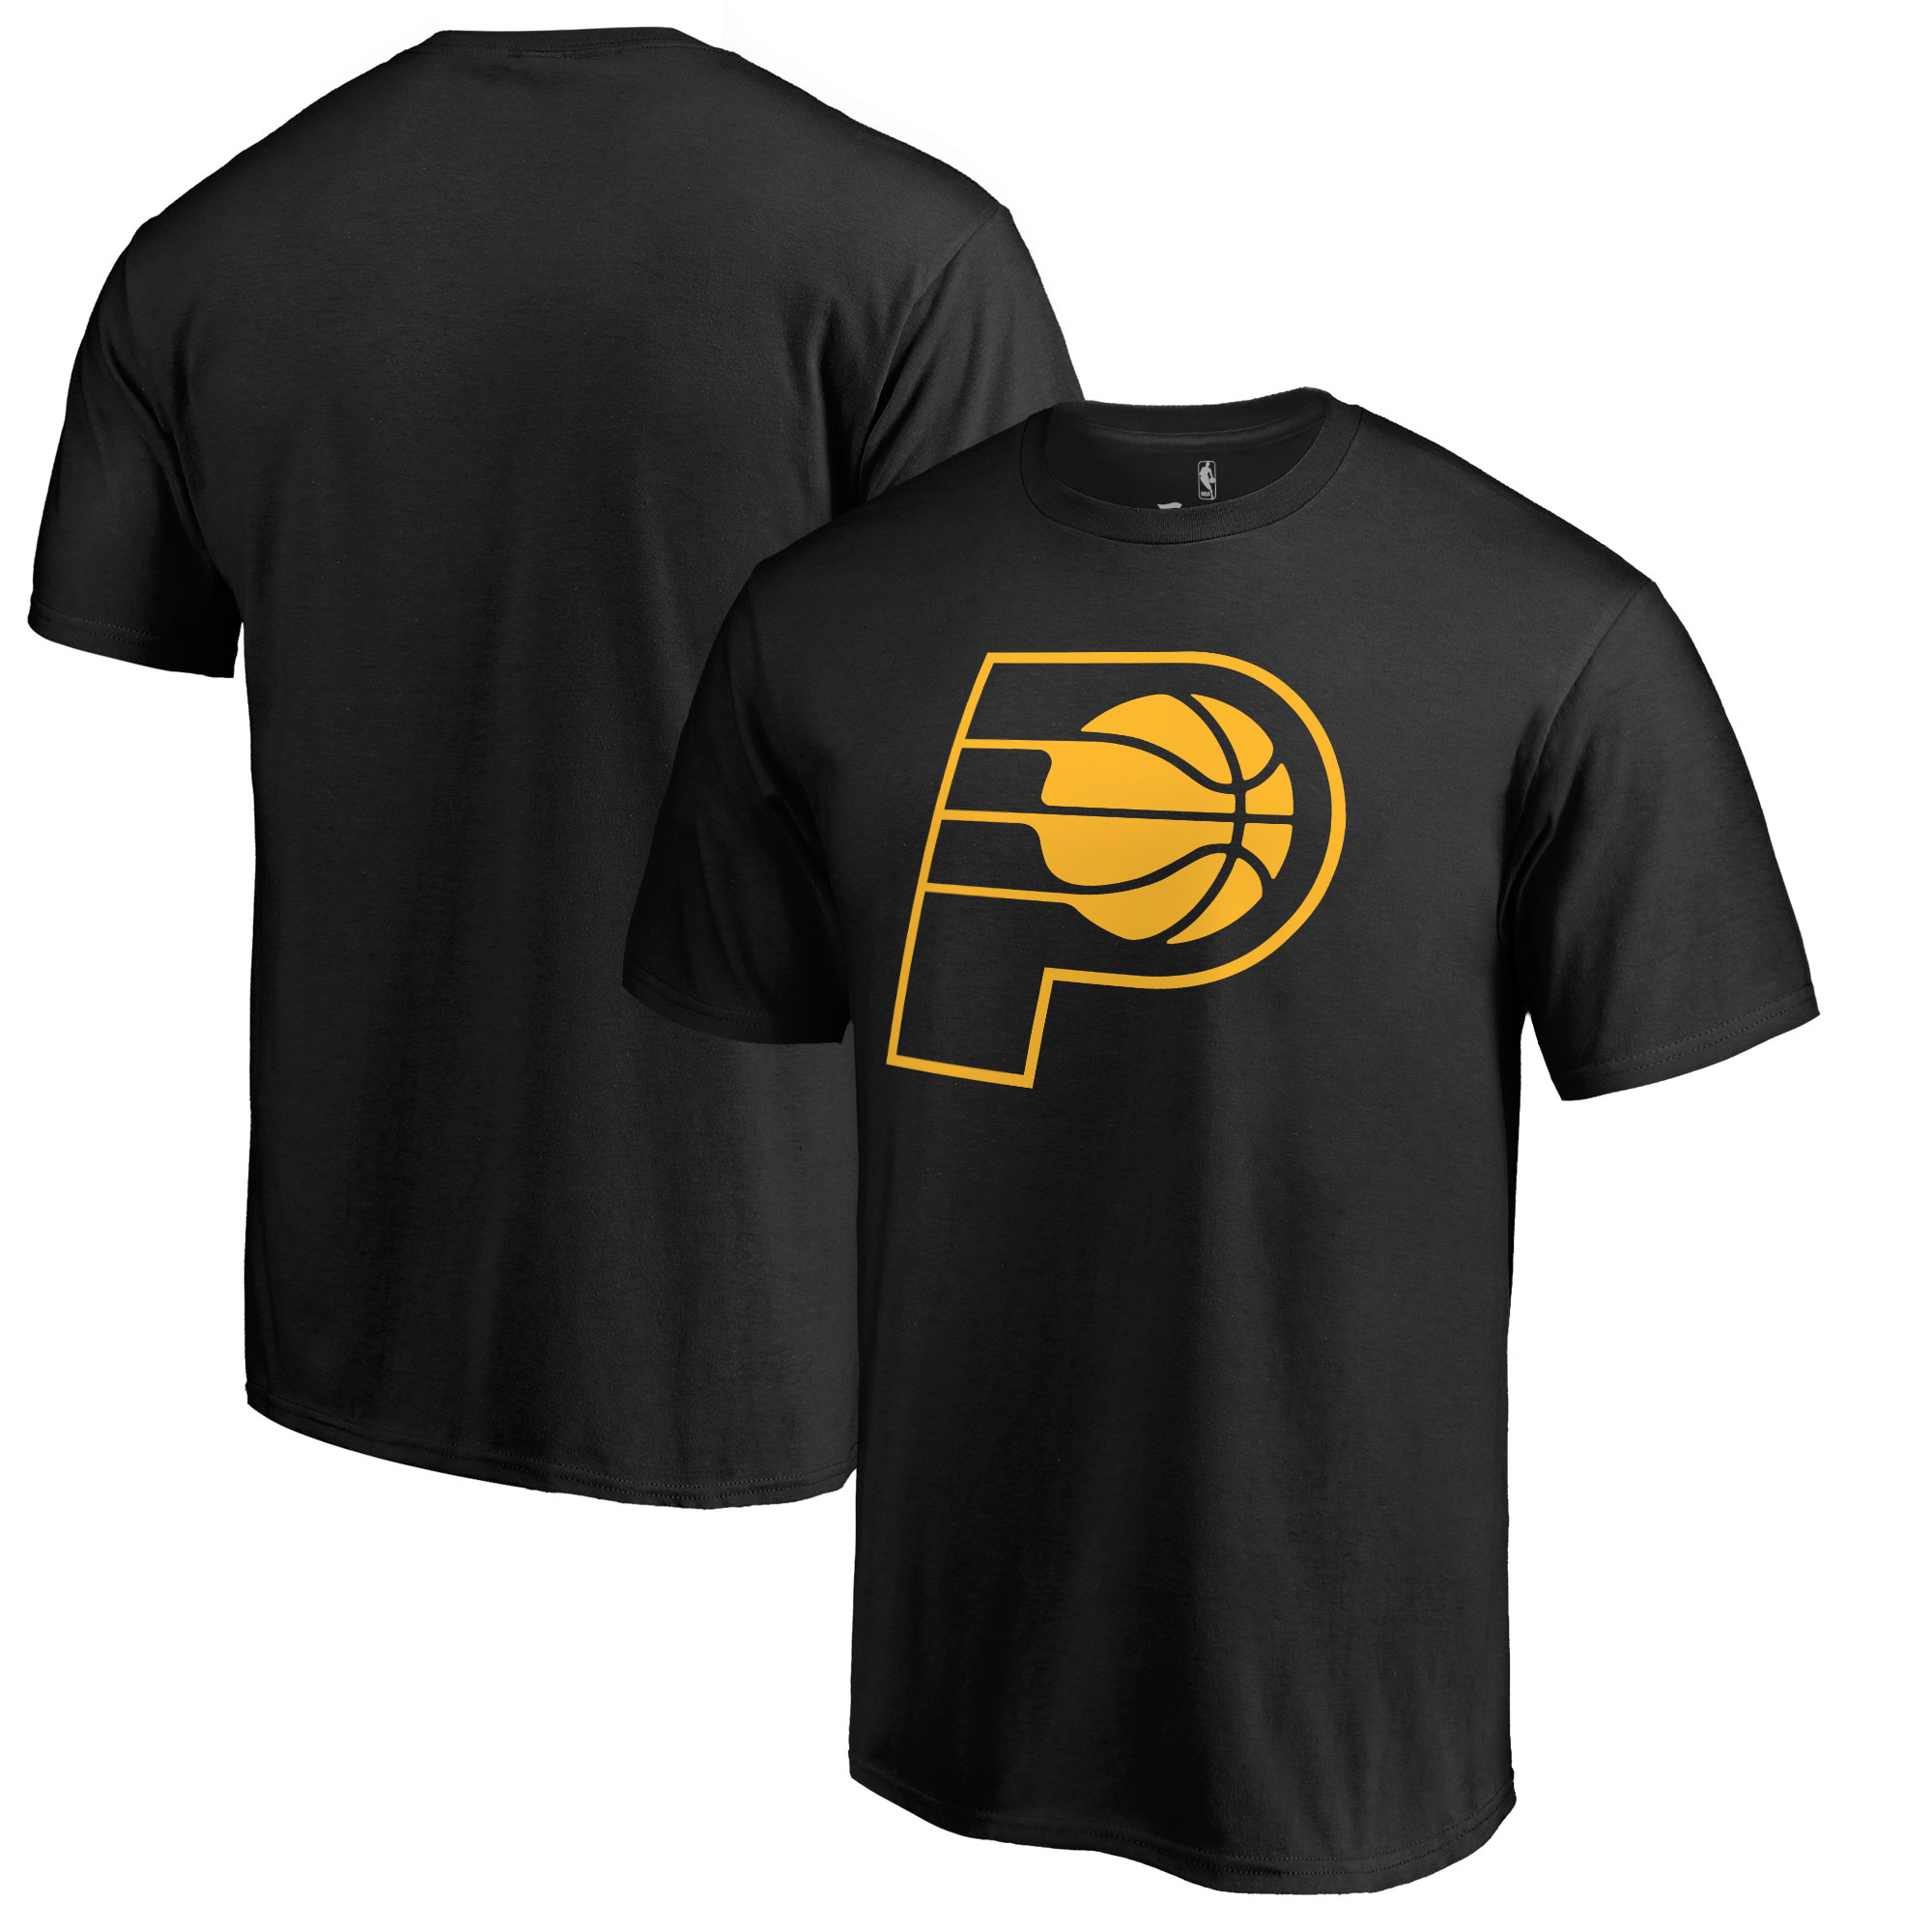 Indiana Pacers Fanatics Branded Taylor T-Shirt - Black